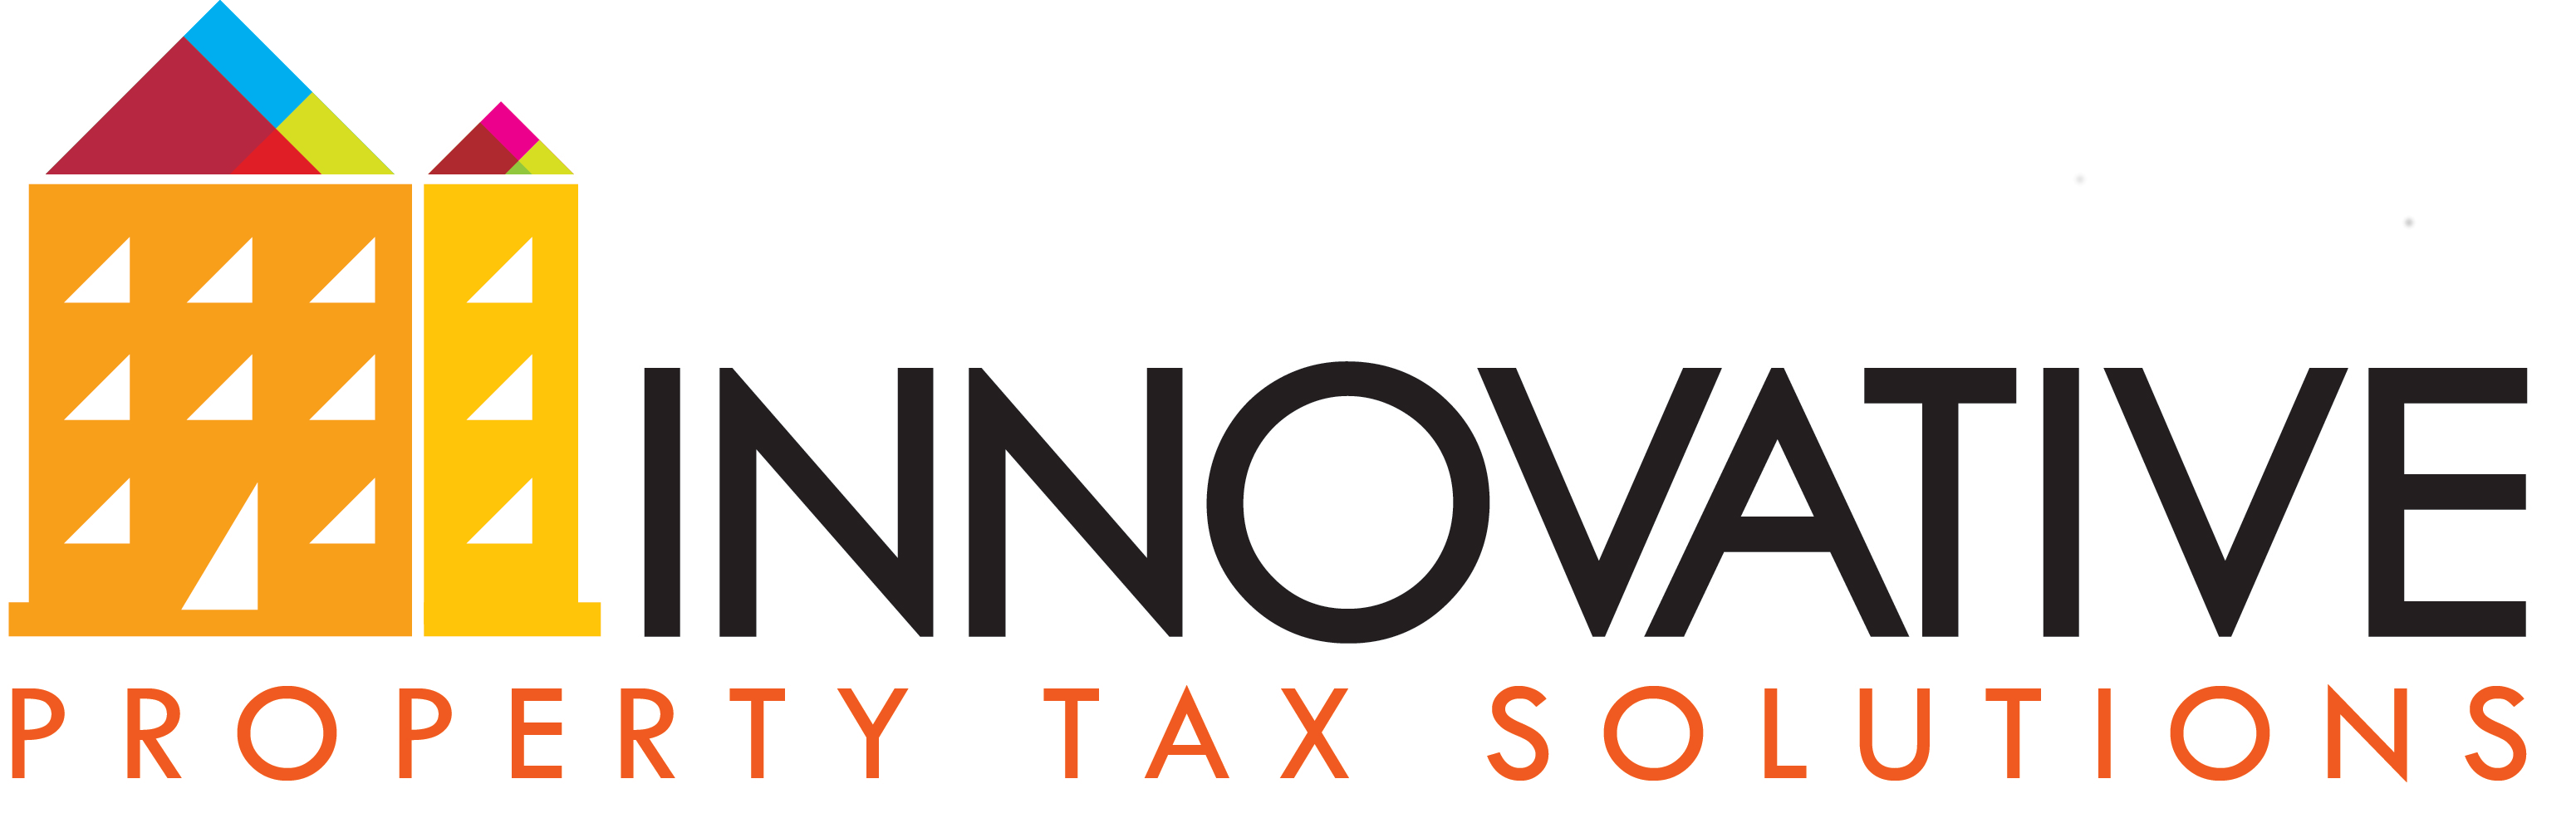 Innovative Property Tax Solutions